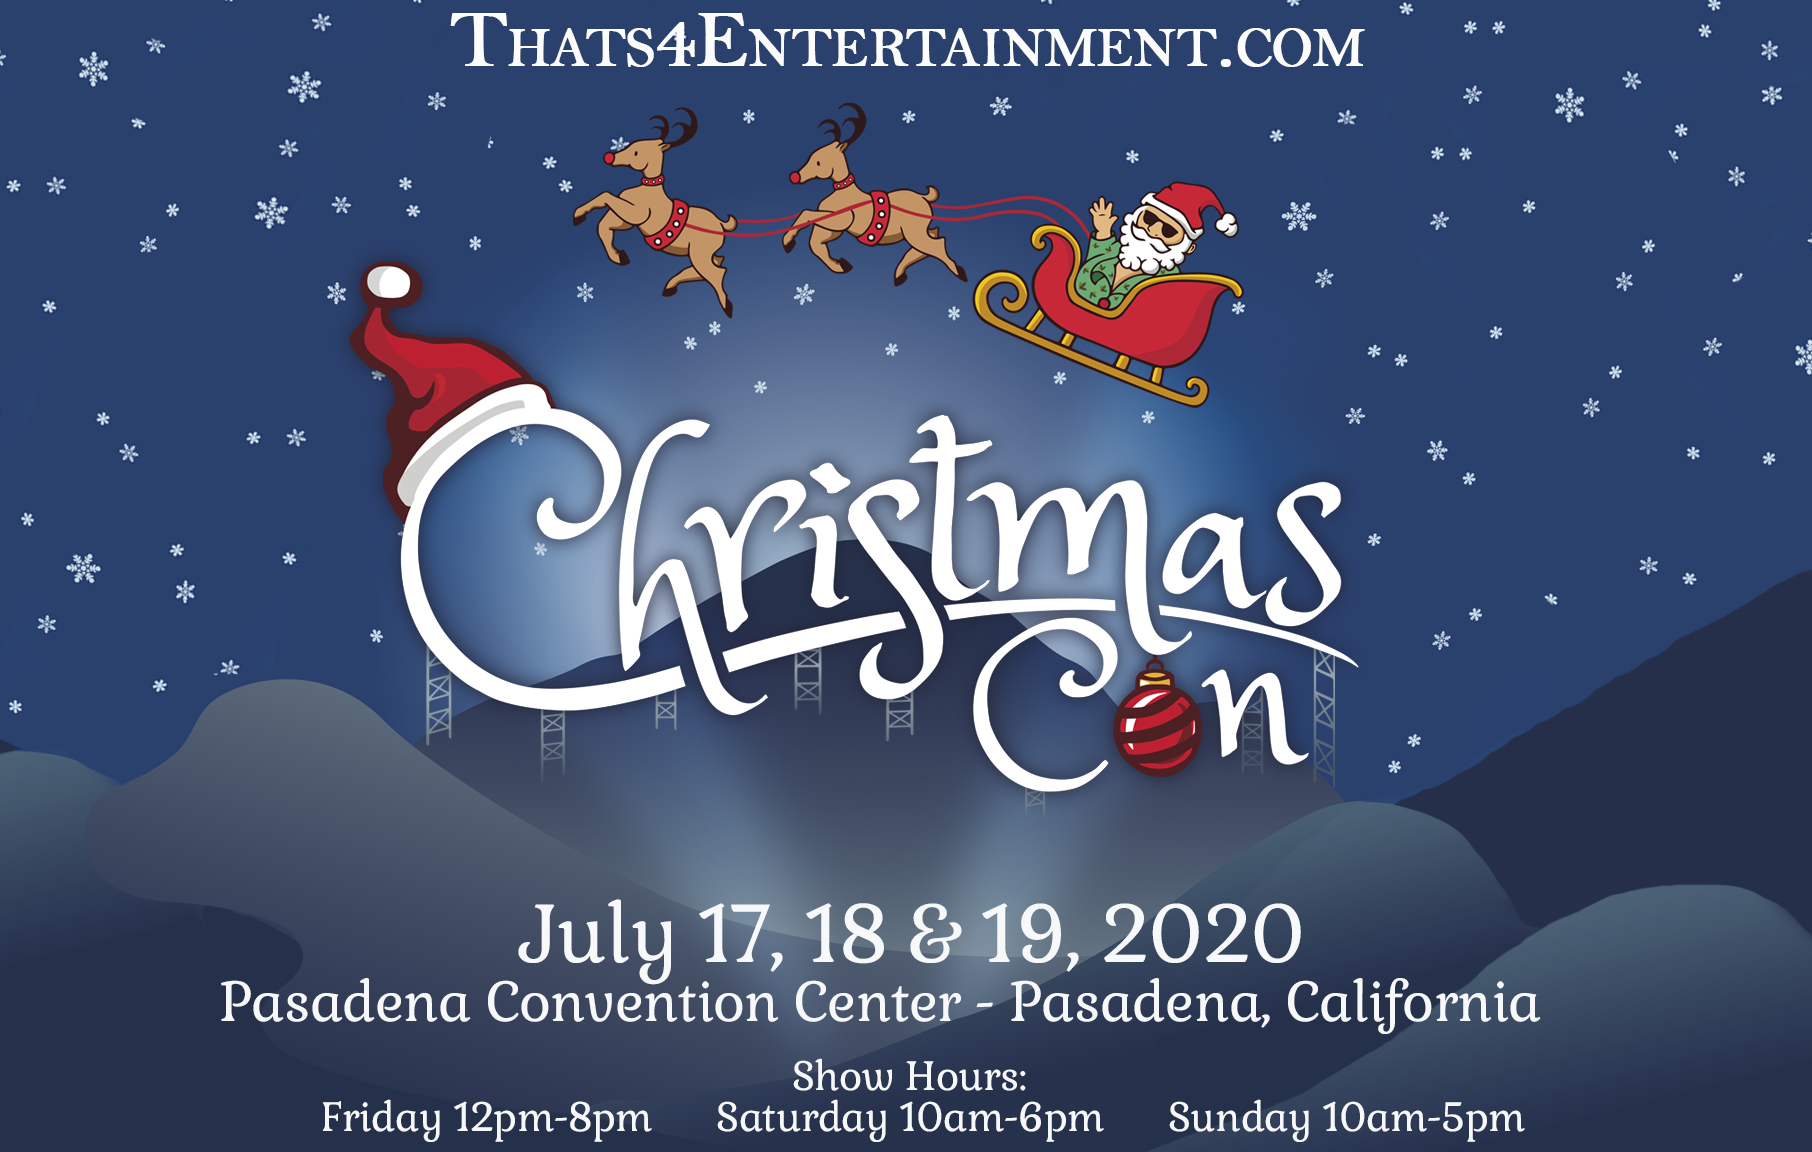 Christmas Con July 2020 Photo Ops